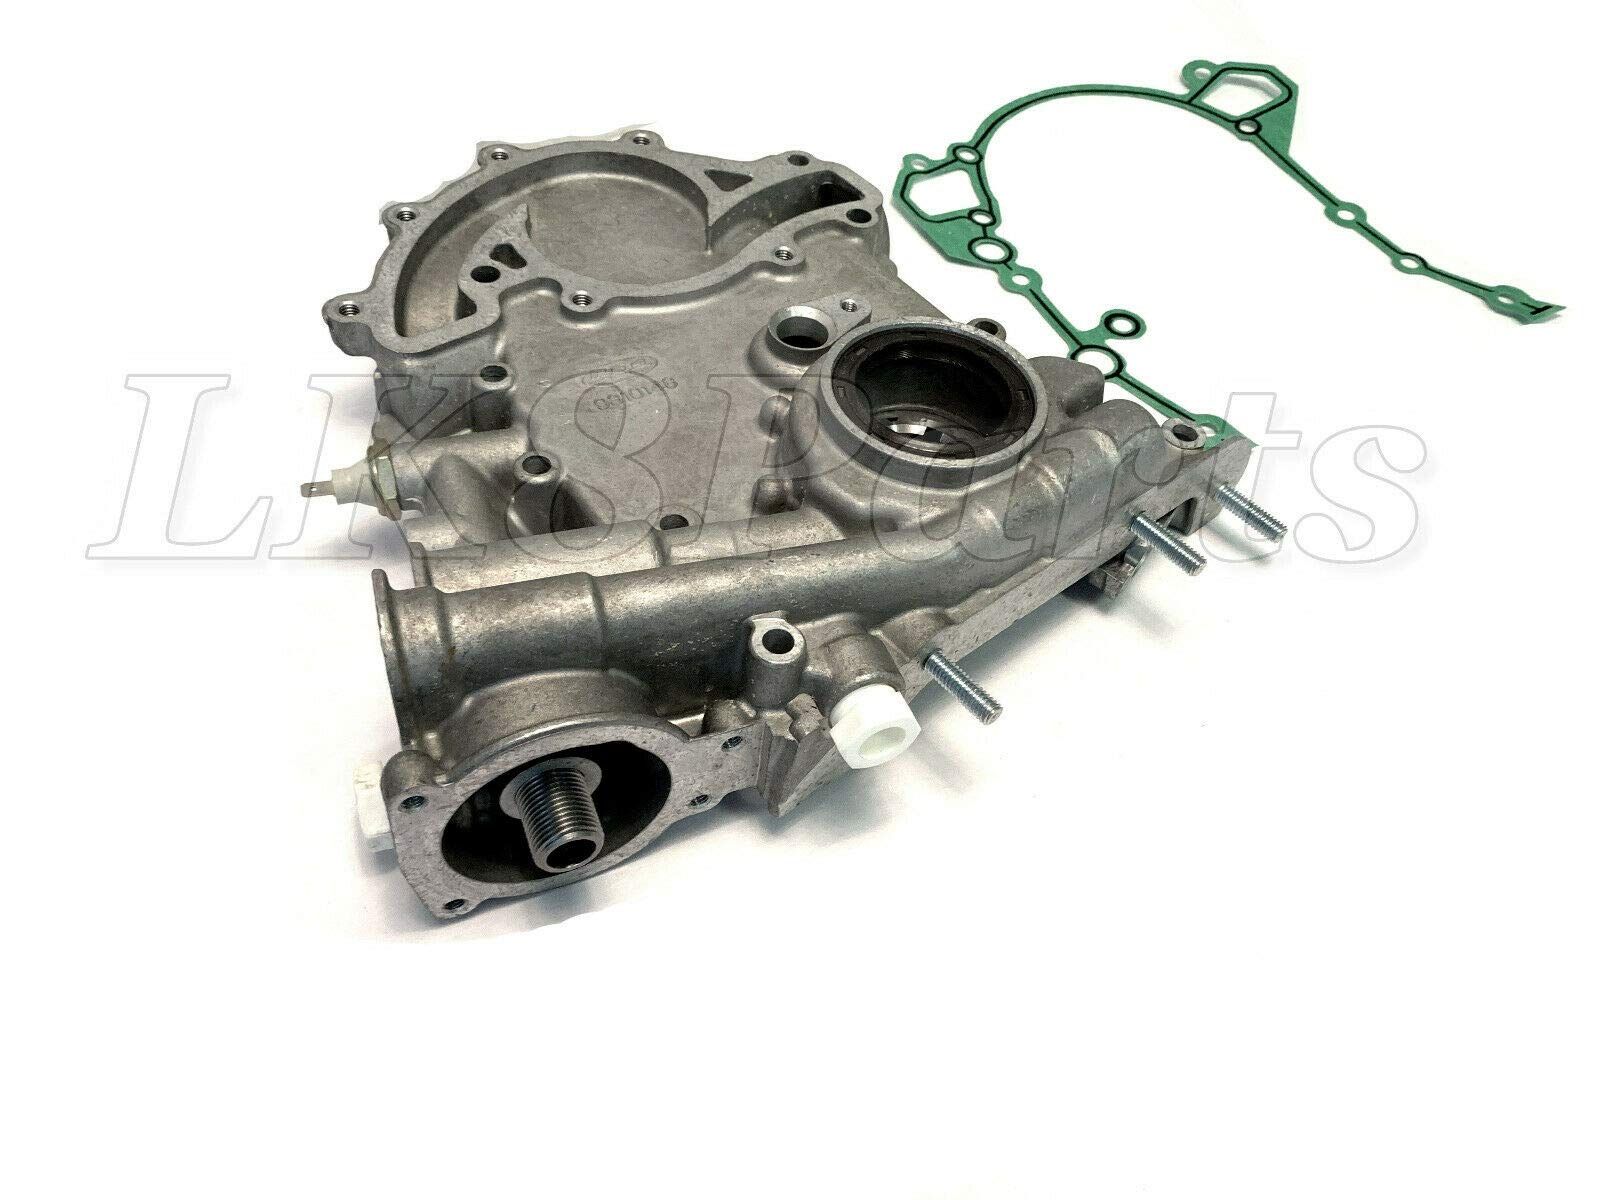 RANGE ROVER P38 95-99 DISCOVERY OIL PUMP FRONT ENGINE COVER W/GASKET ERR6438 by Proper Spec (Image #2)